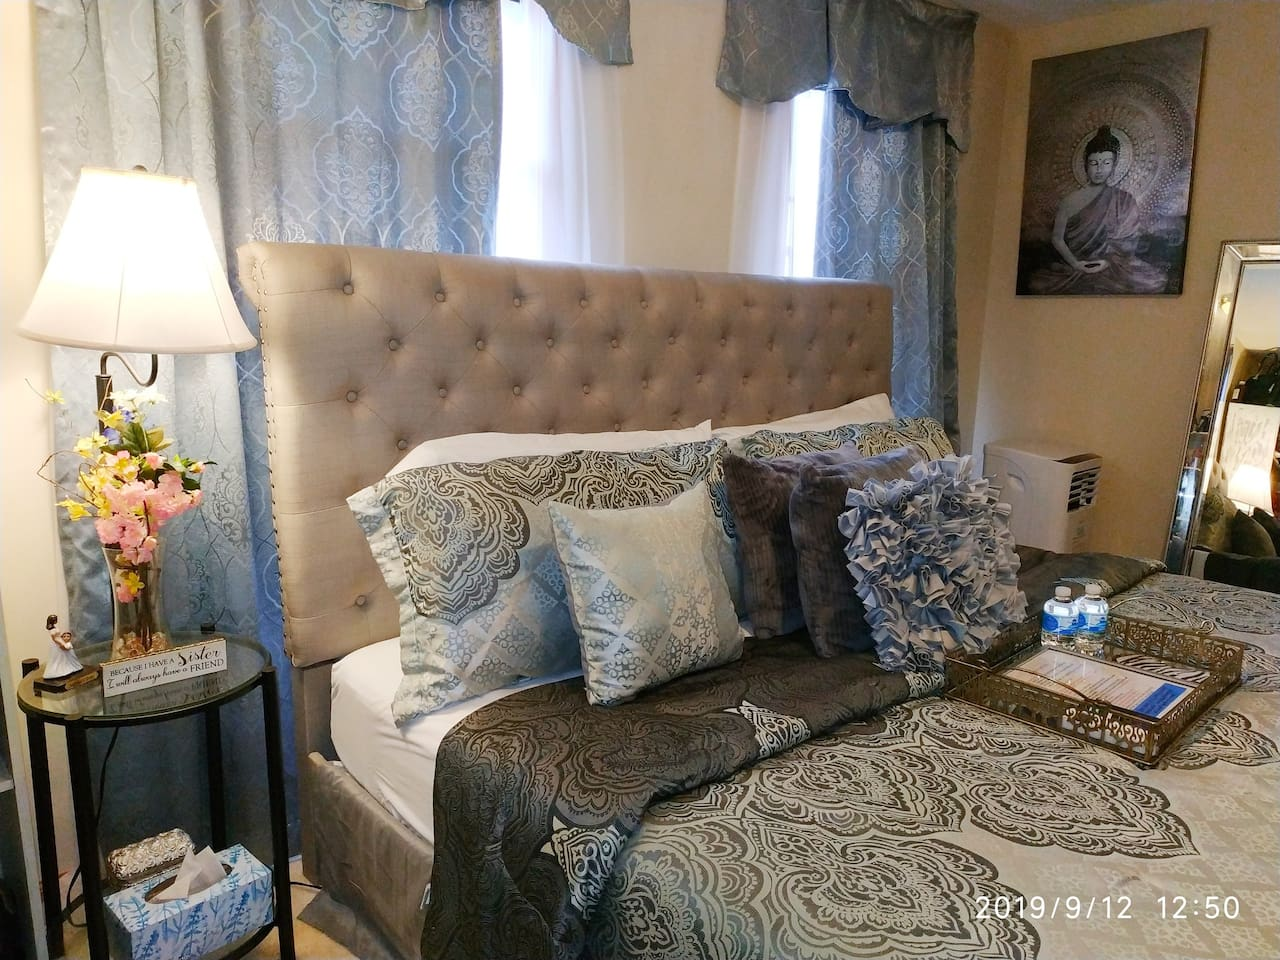 """Our beds are made with *** anti-bugs mattress cover: hygienic & sanitary. *** Only use white cotton sheets, it shows when it's dirty KING bed *60 """" Smart 4k TV over 300 channels  * AC/ Heater * Full length mirror * dresser *Strong fast WI FI (Free)"""